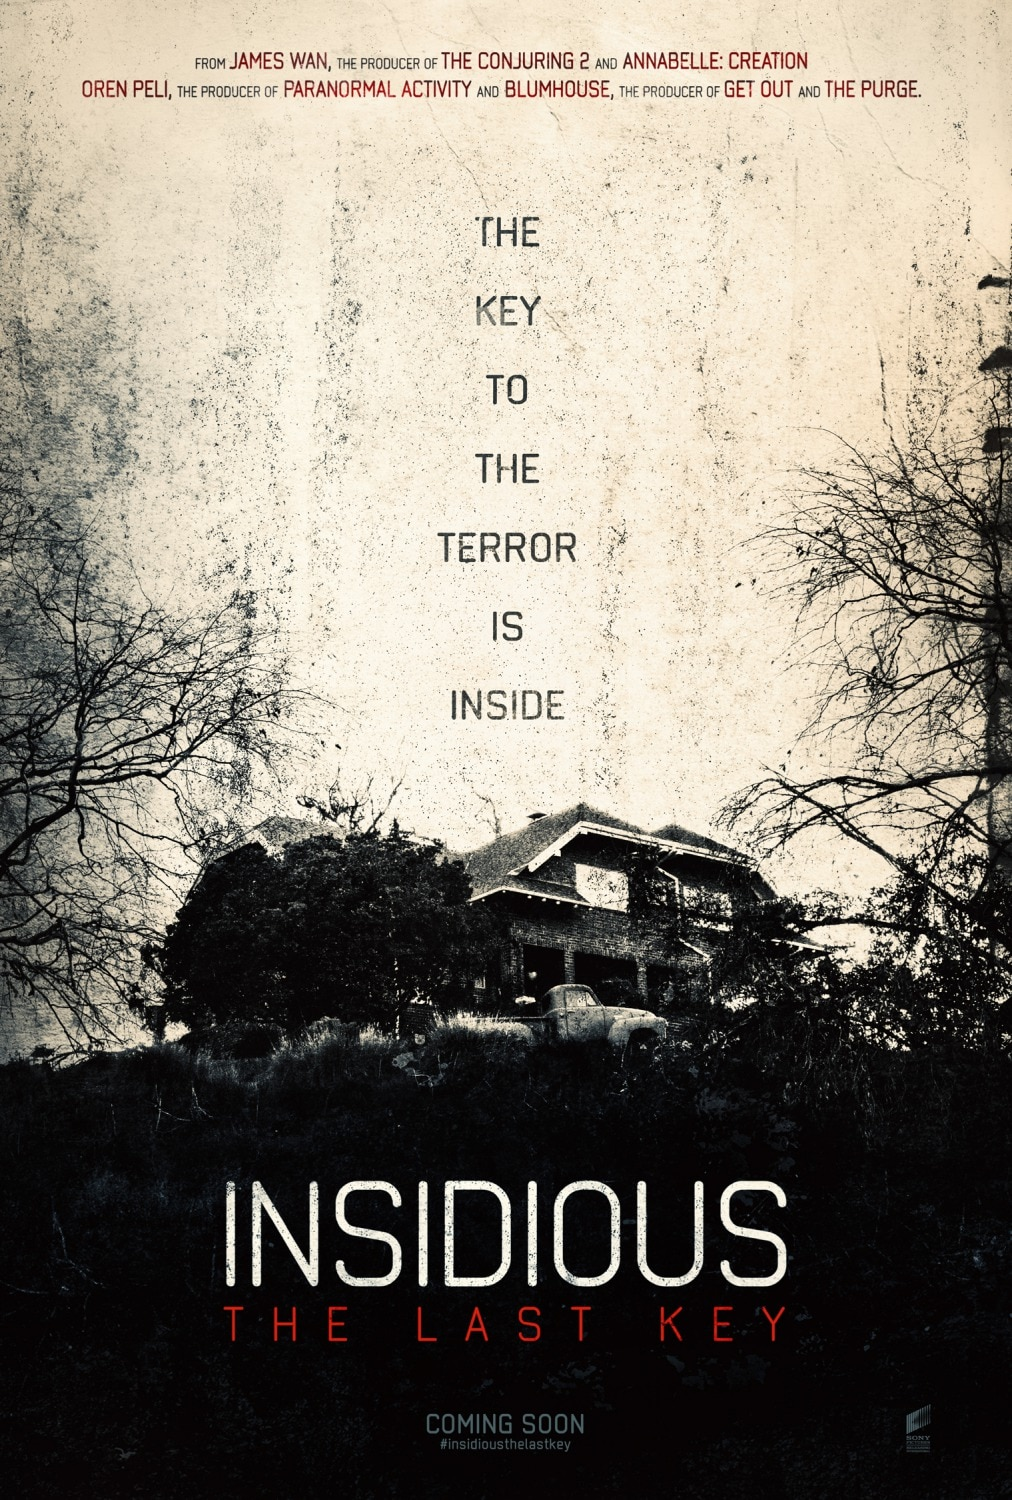 Interview: Composer Joseph Bishara on Scoring the Insidious